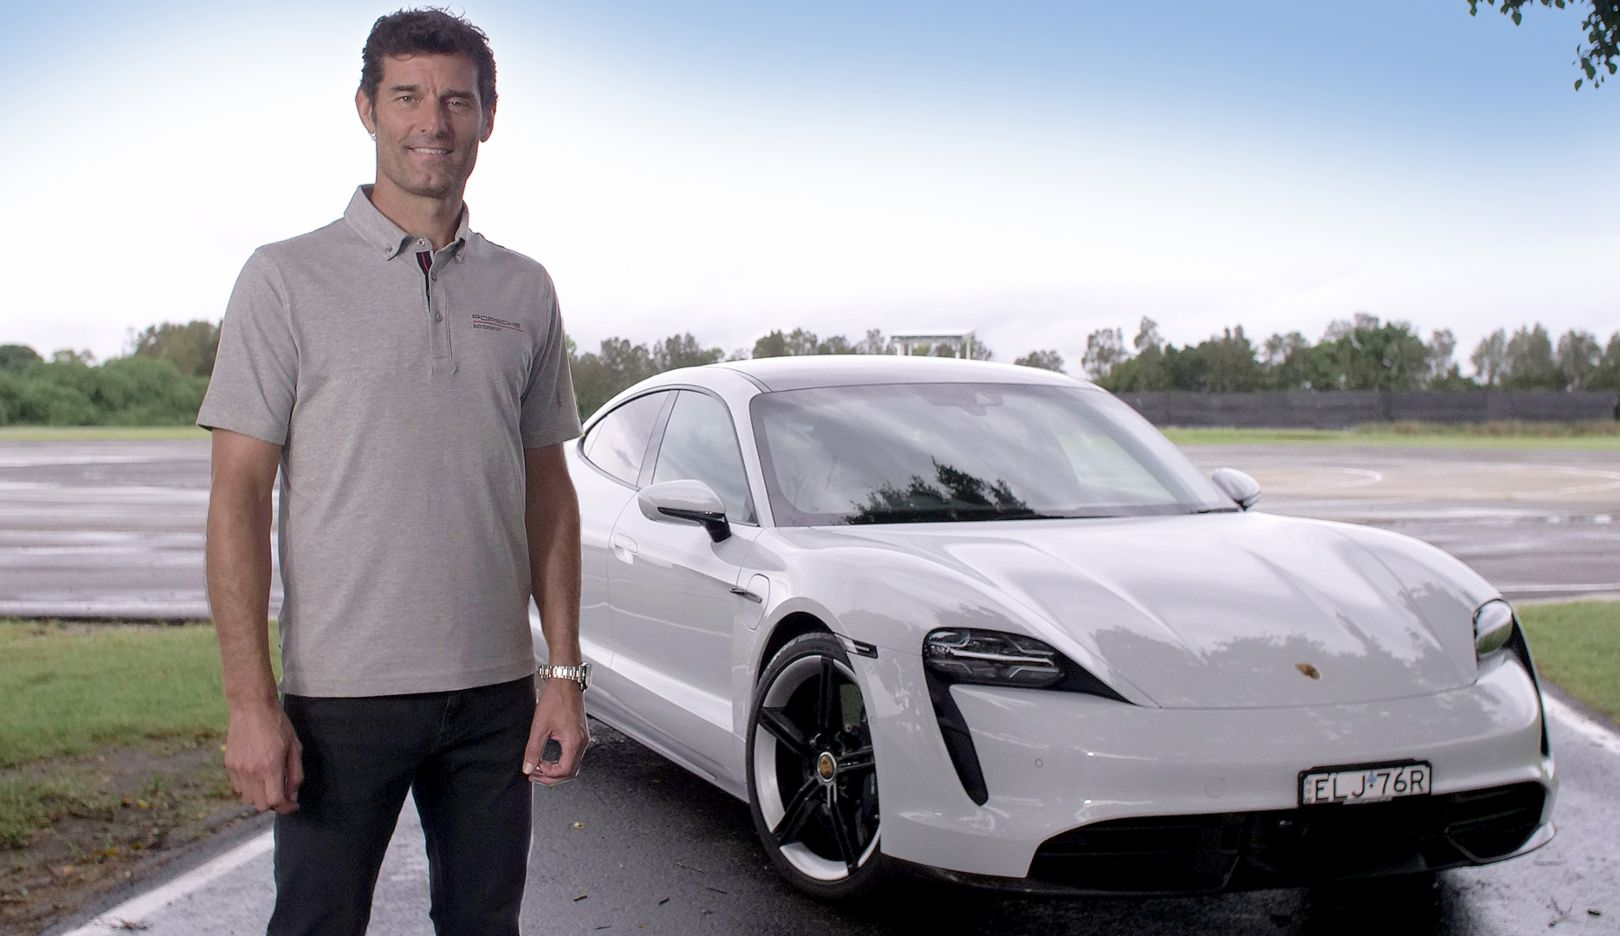 Special delivery: Taycan taxi with Mark Webber - Image 4